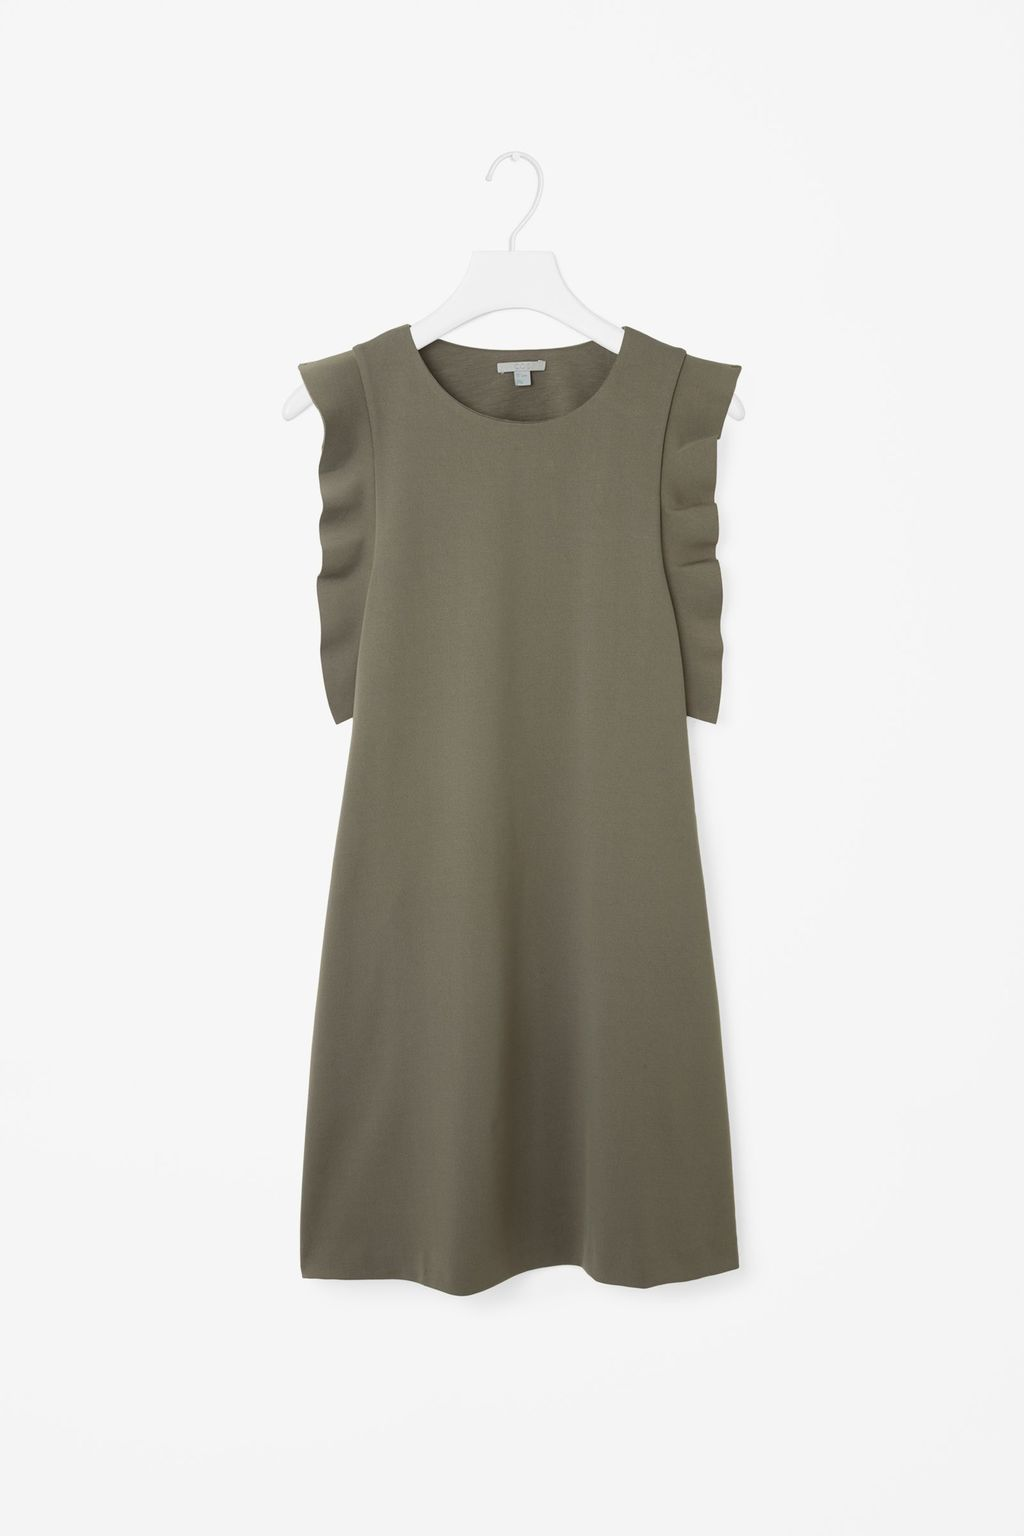 Dress With Sleeve Frills - style: shift; pattern: plain; sleeve style: sleeveless; predominant colour: khaki; occasions: casual; length: just above the knee; fit: soft a-line; fibres: viscose/rayon - stretch; neckline: crew; sleeve length: sleeveless; pattern type: fabric; texture group: other - light to midweight; season: s/s 2016; wardrobe: basic